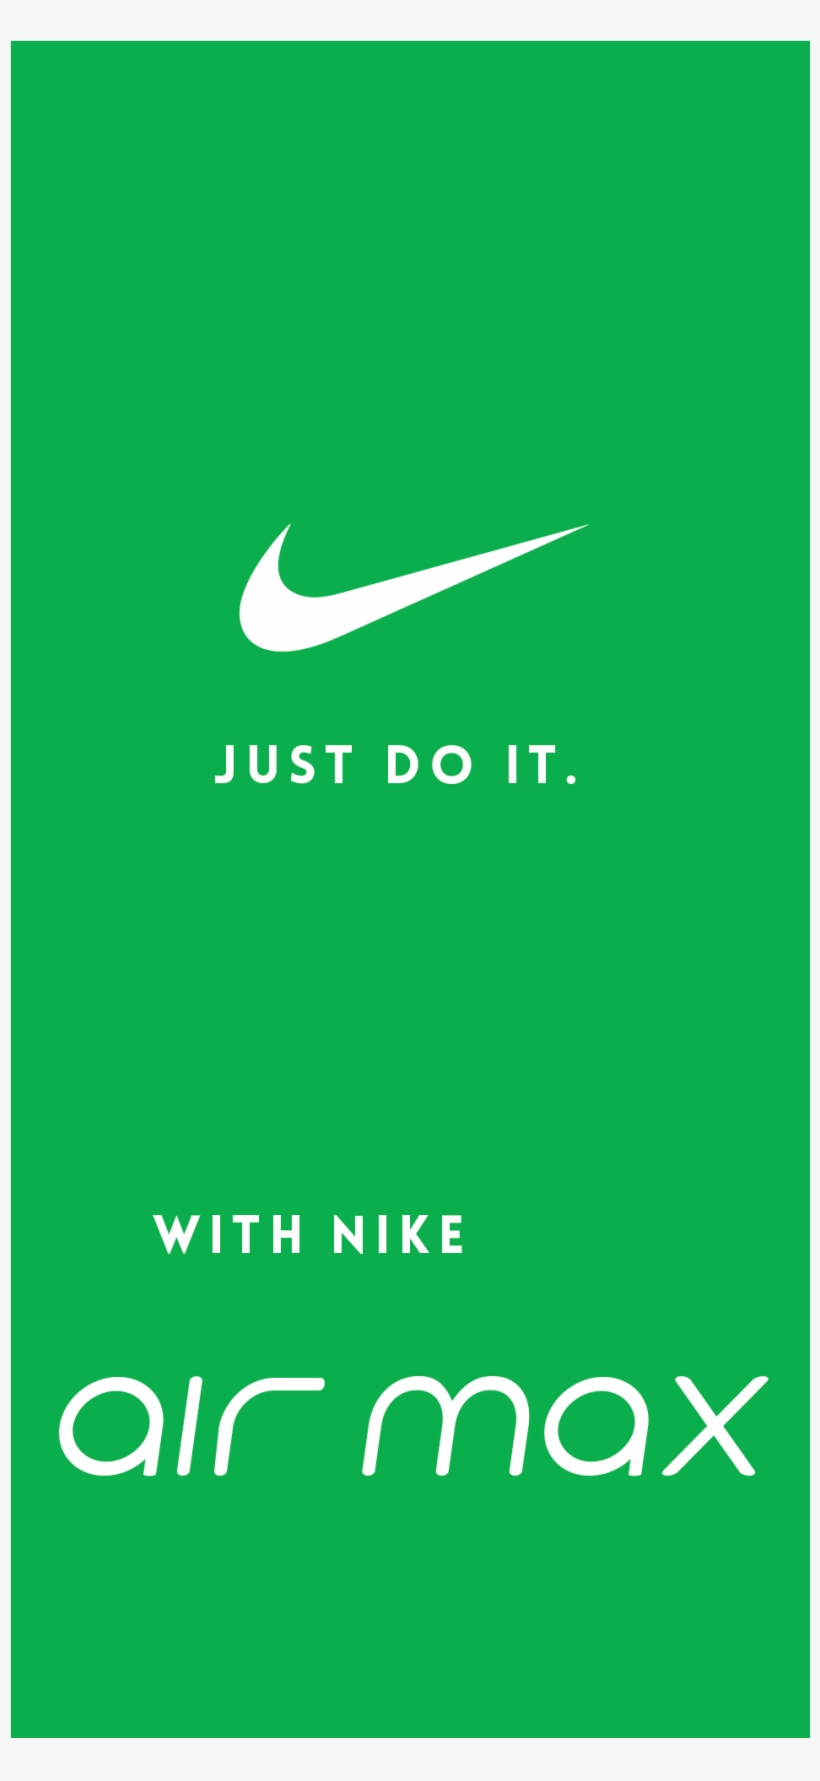 separation shoes c2eed 3a9ac Nike Air Max Ad - Sign, transparent png download